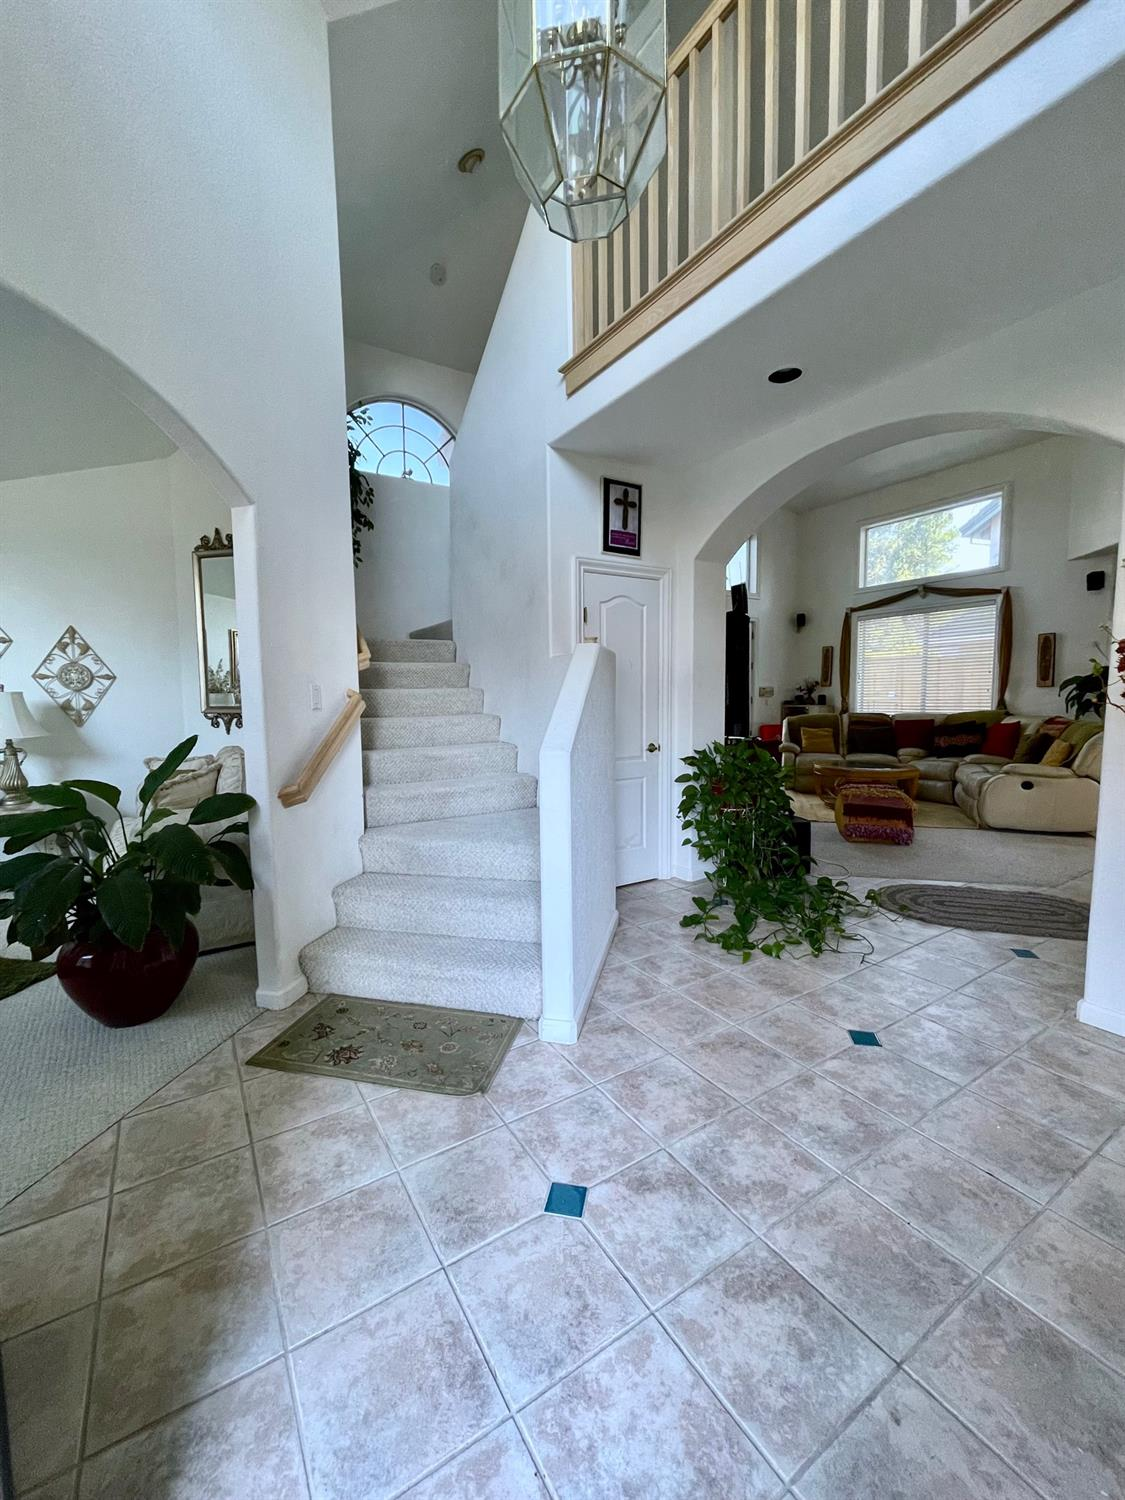 Photo 5 for Listing #221096936